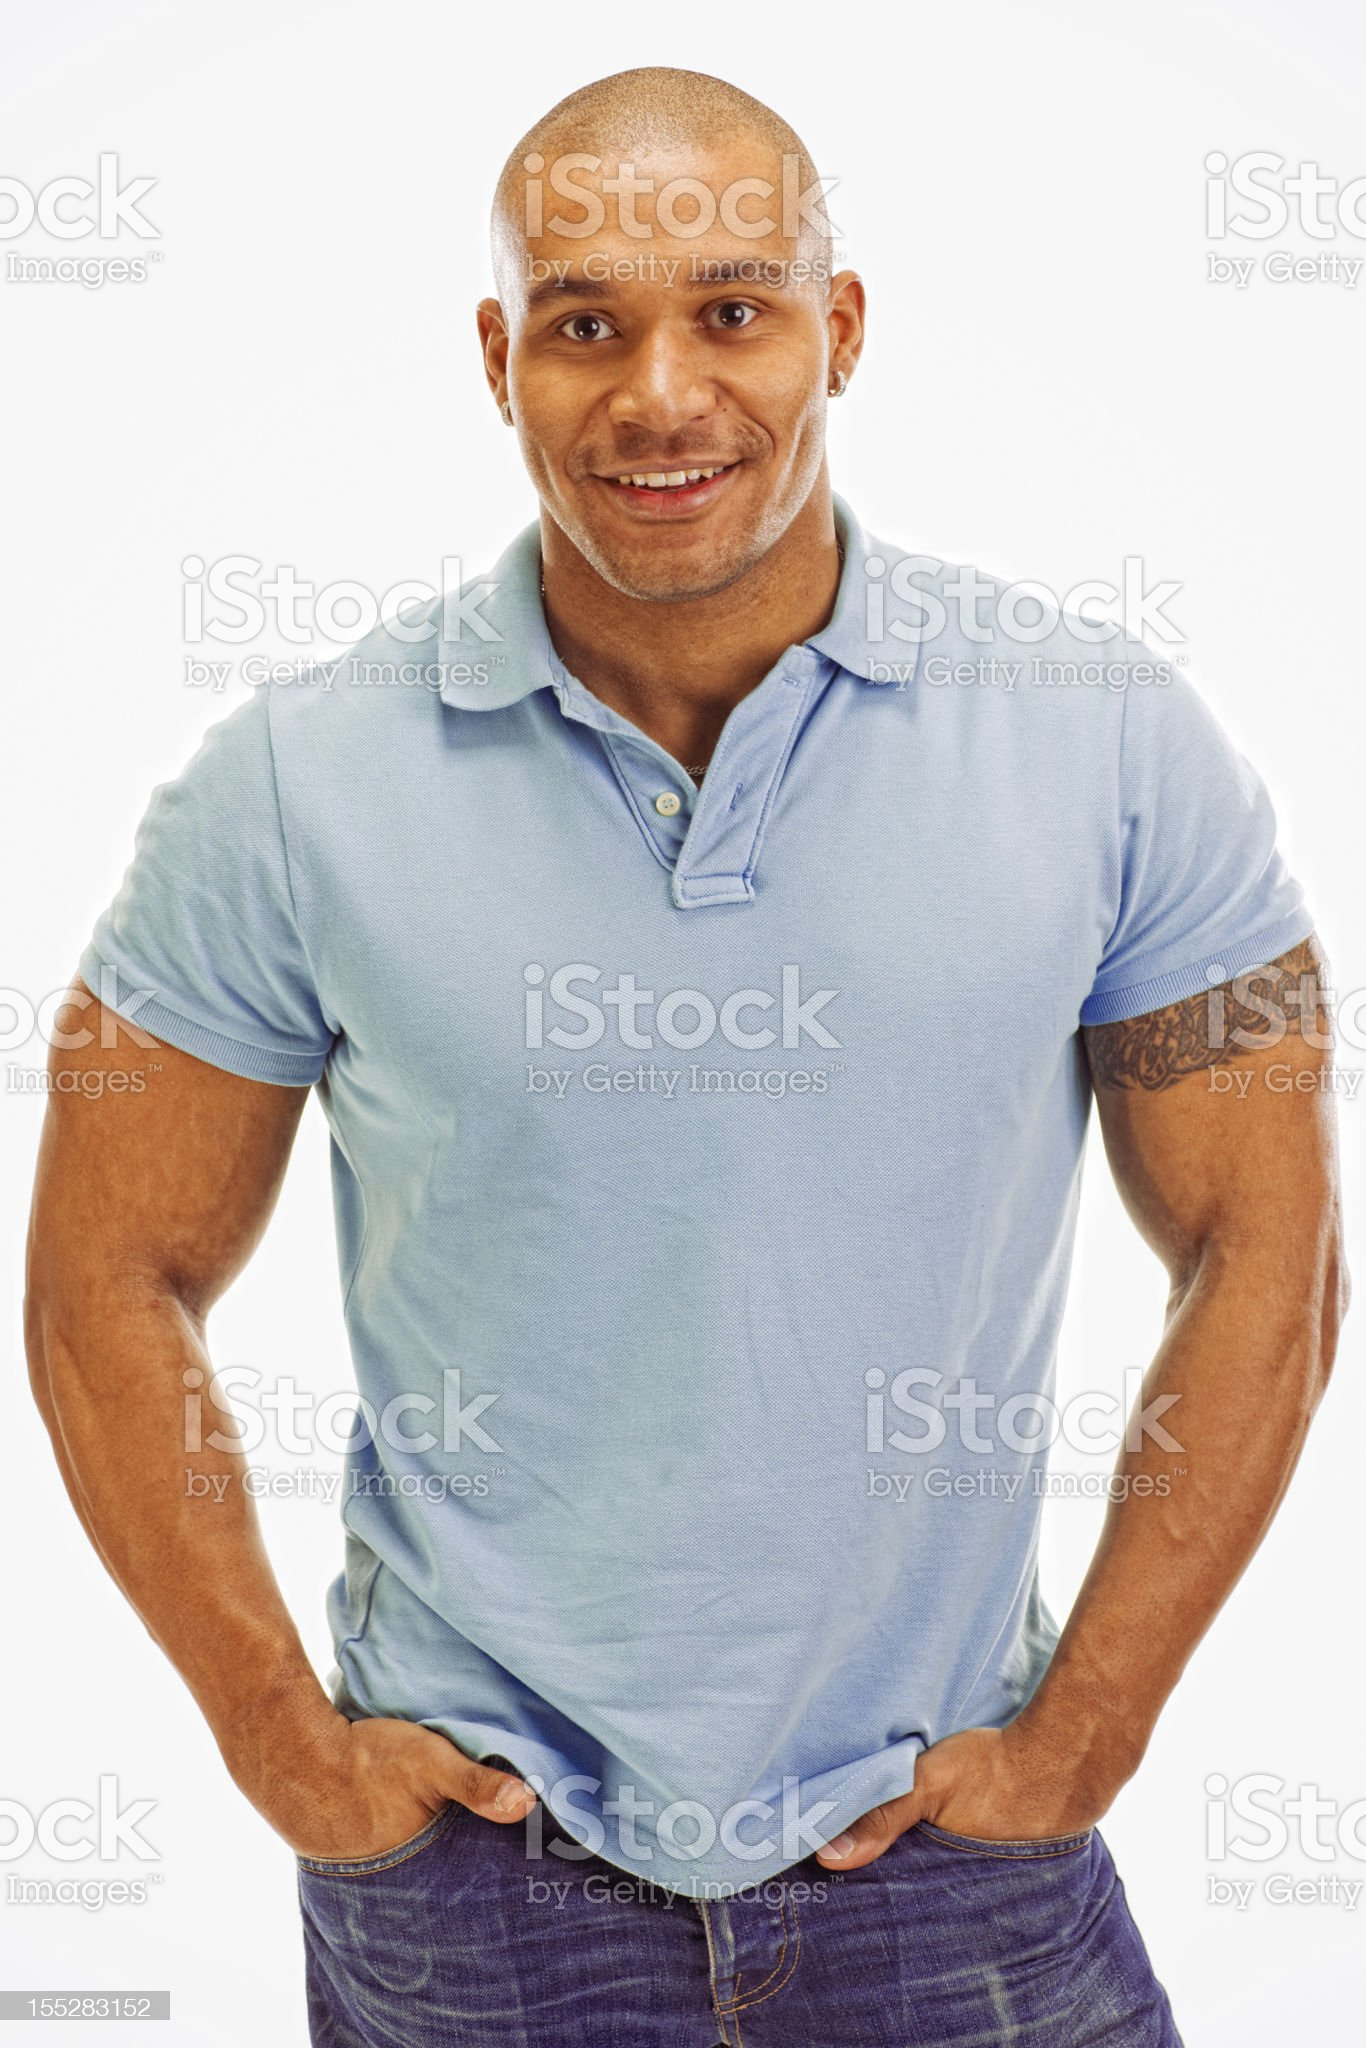 Handsome Smiling Young Man on white background royalty-free stock photo